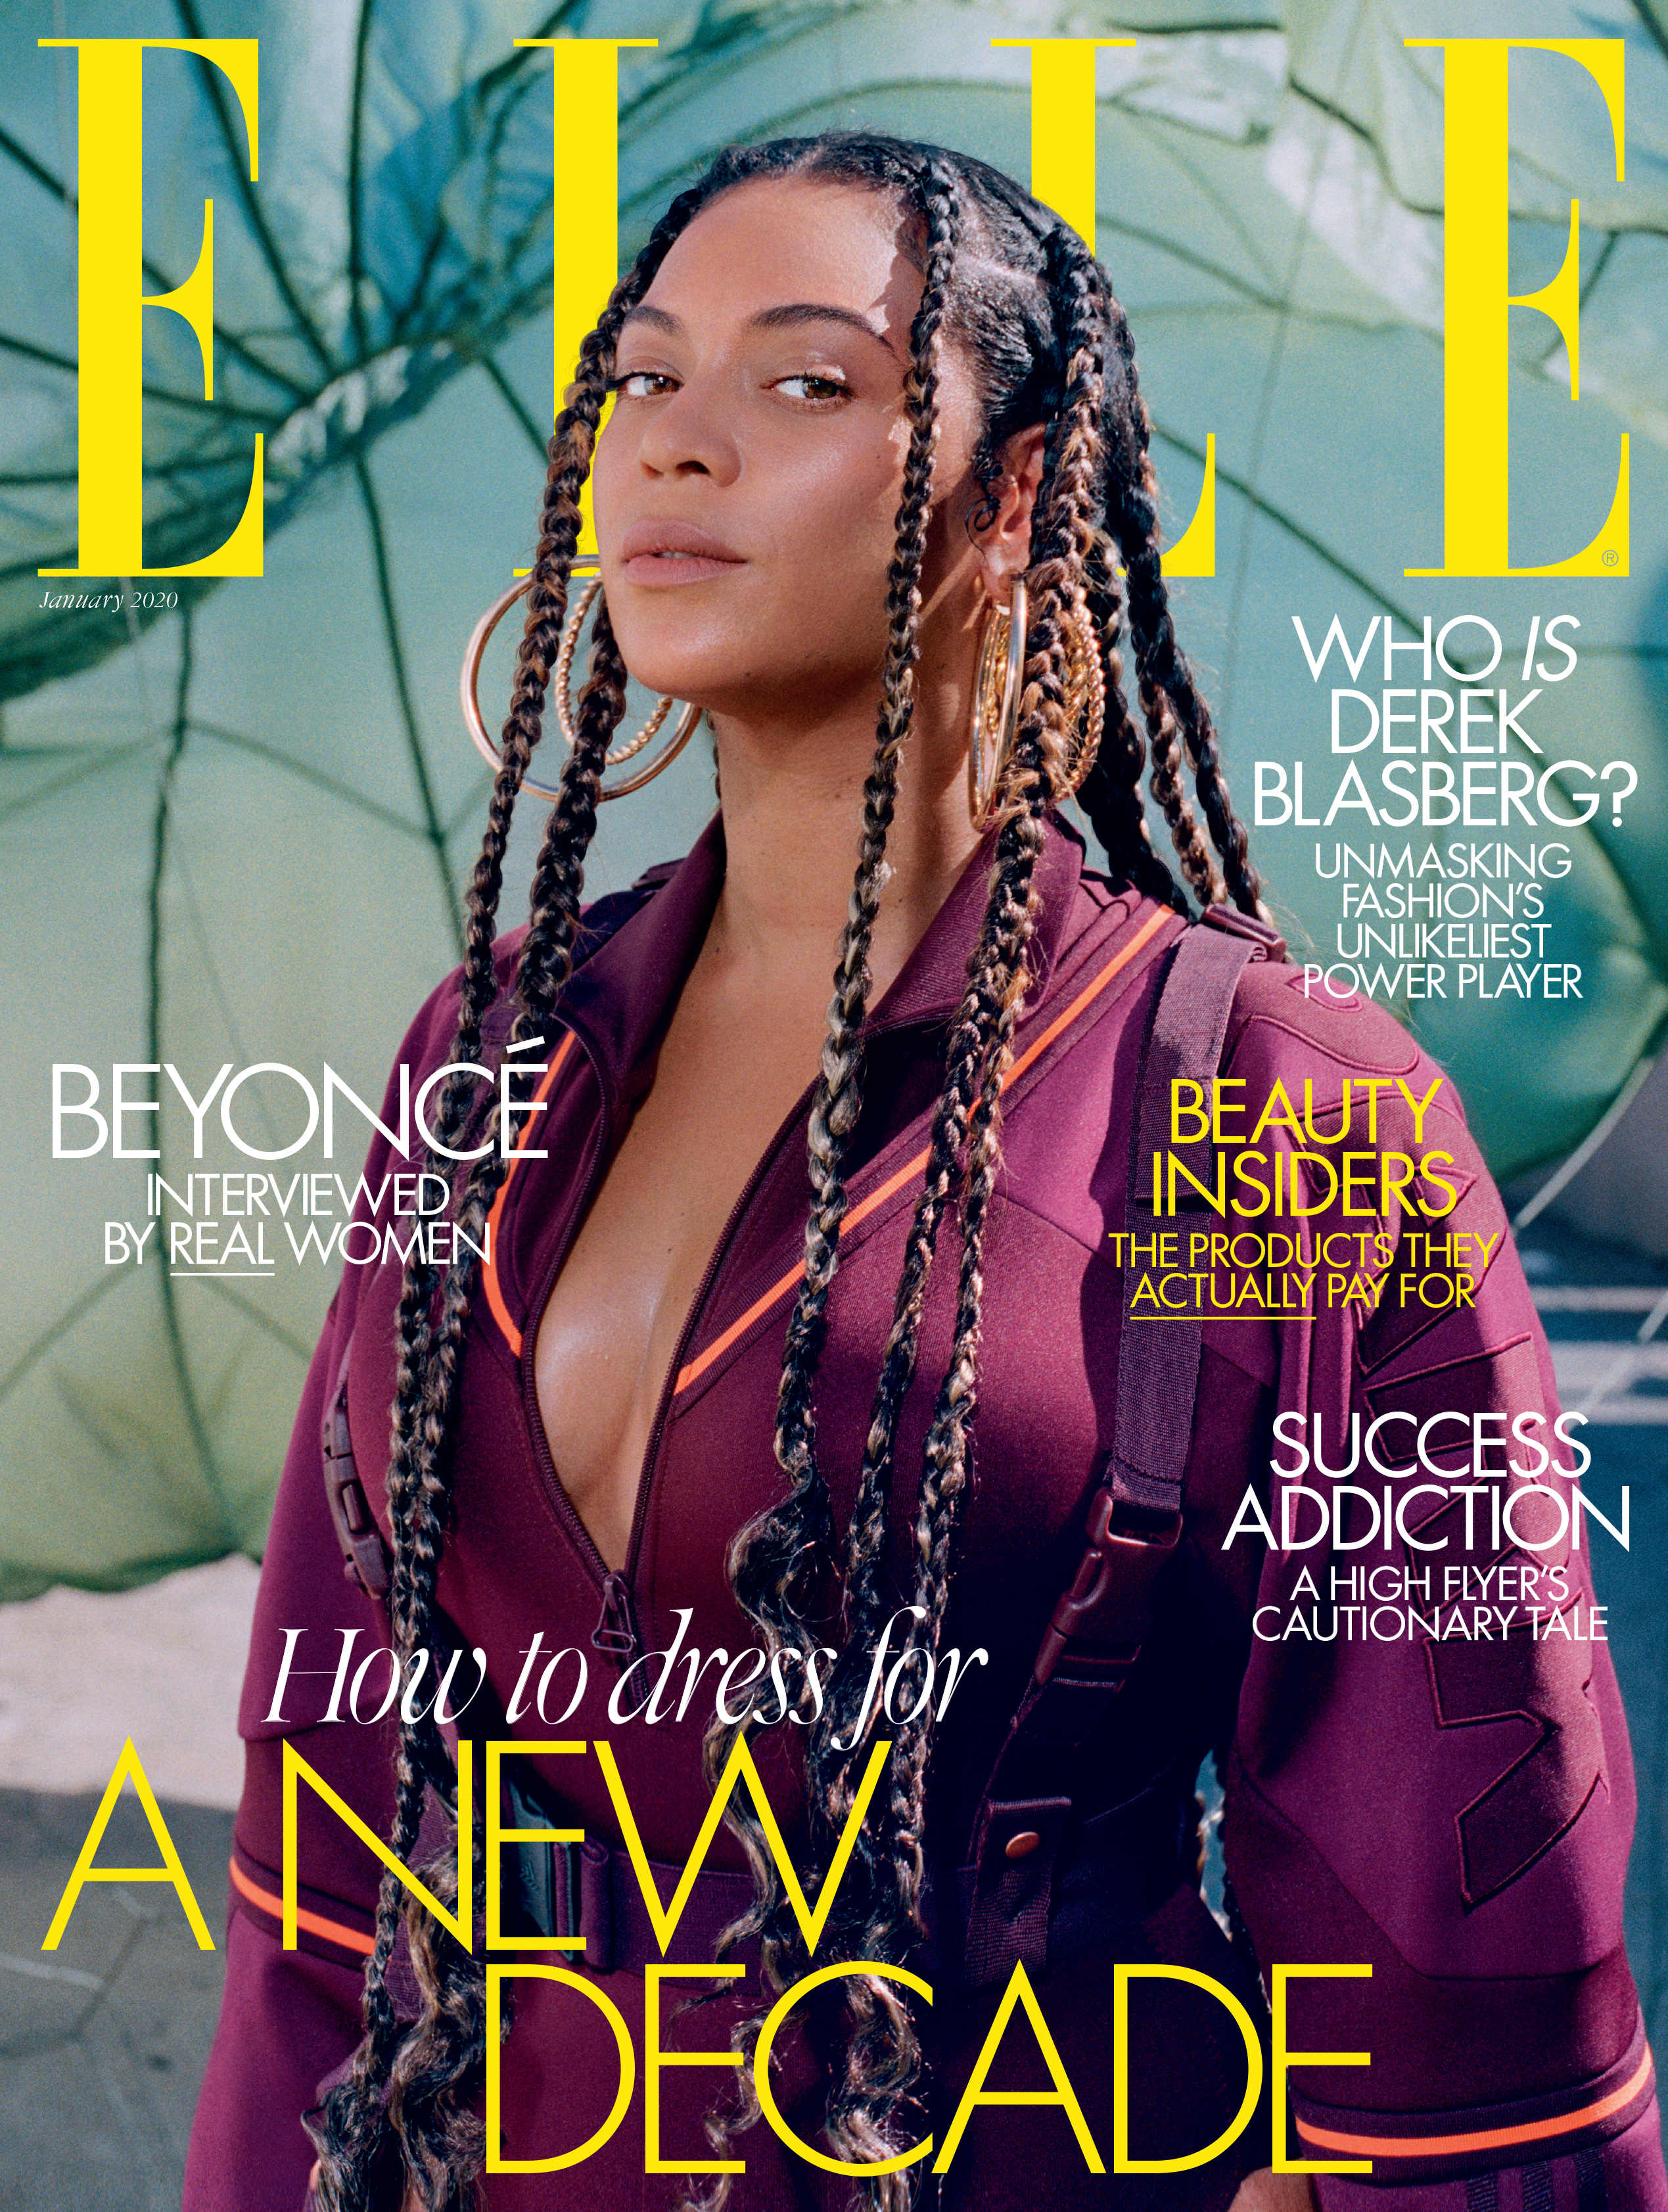 Beyonce on the cover of Elle UK magazine